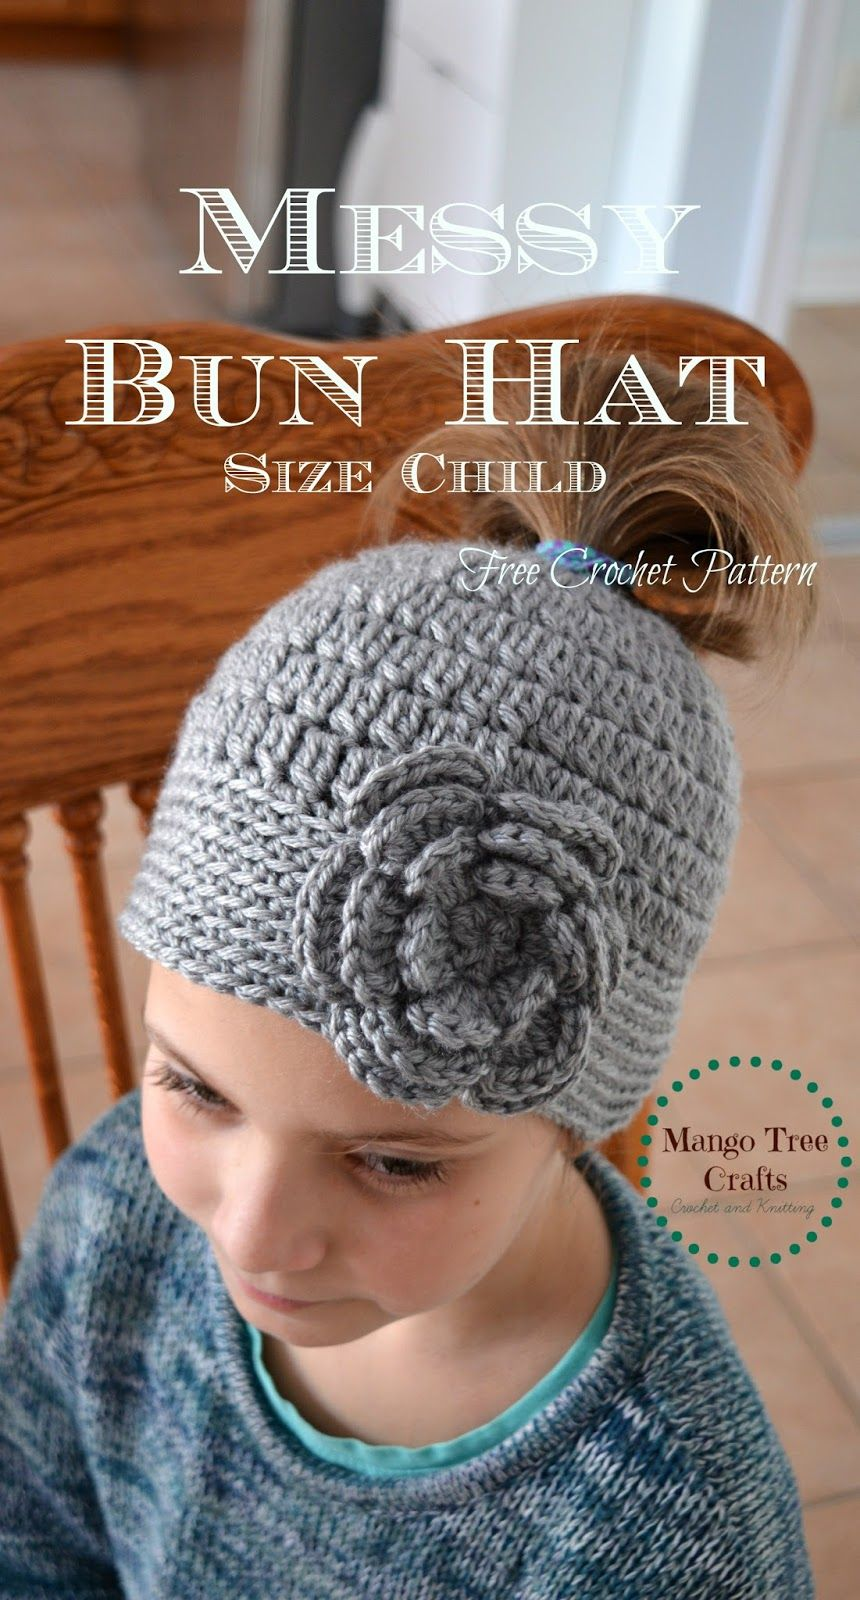 094e6bddad5 Messy Bun Hat Crochet Pattern Materials used  ⦁ Hair tie about 2